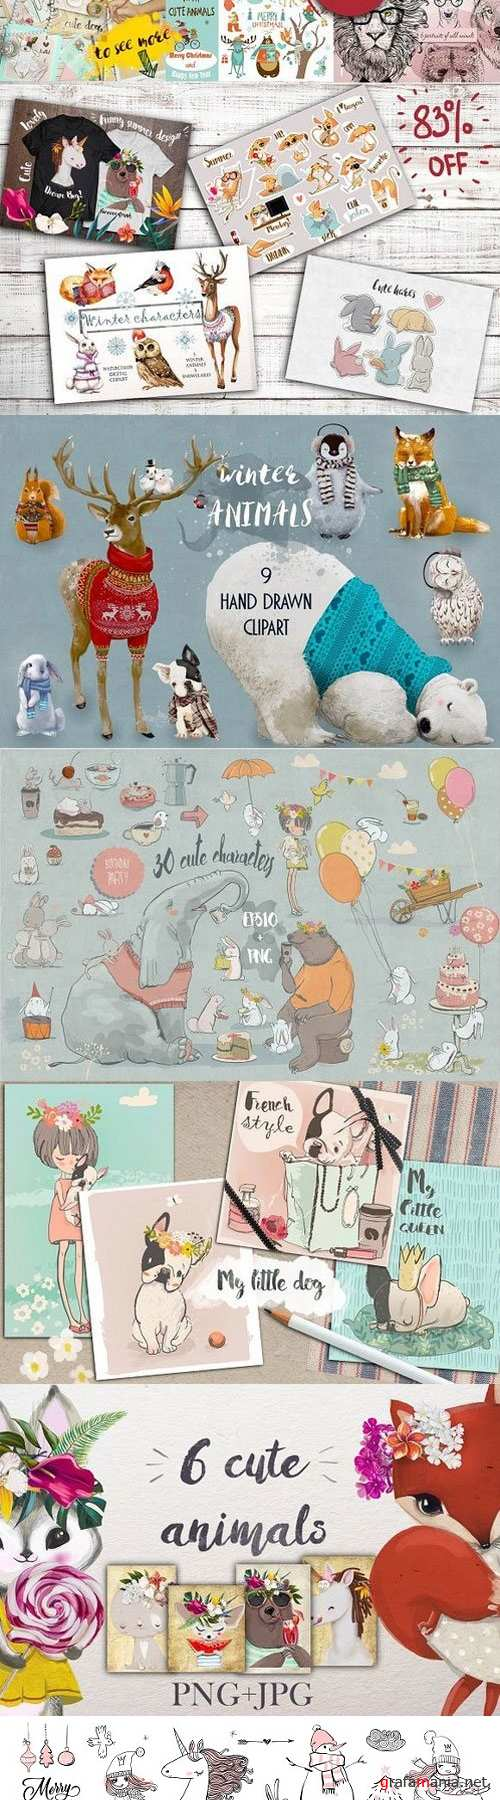 Cute animals bundle 1354232